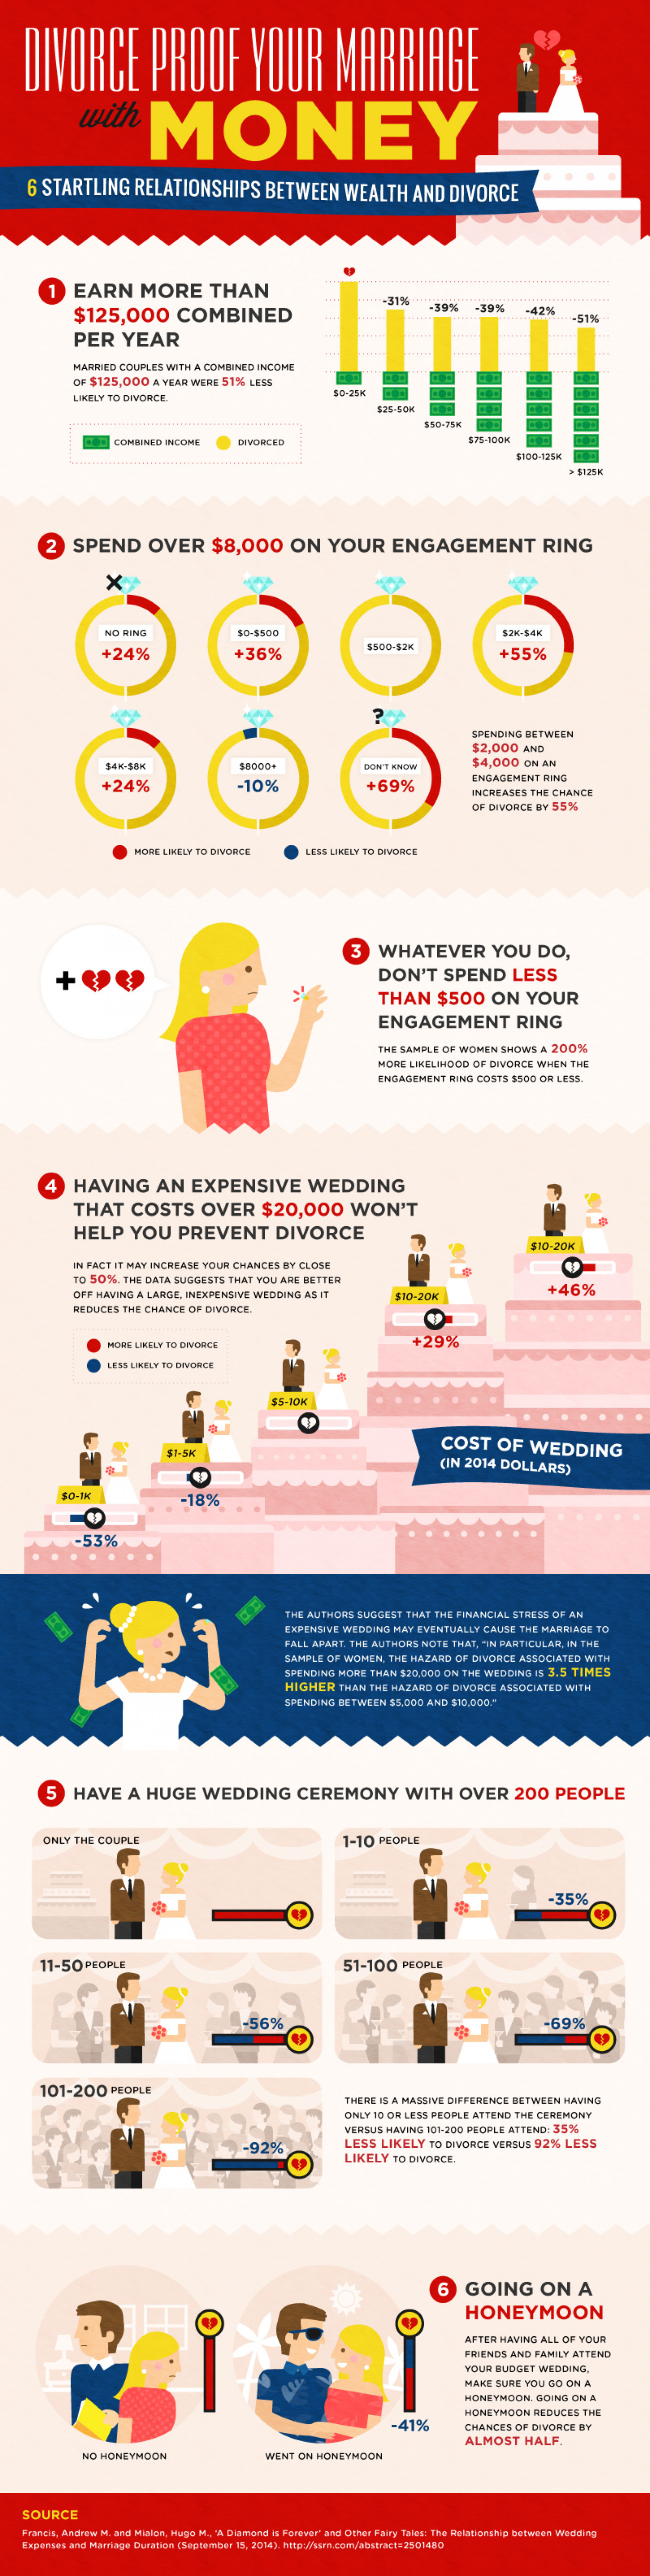 Divorce proof your marriage with money Infographic